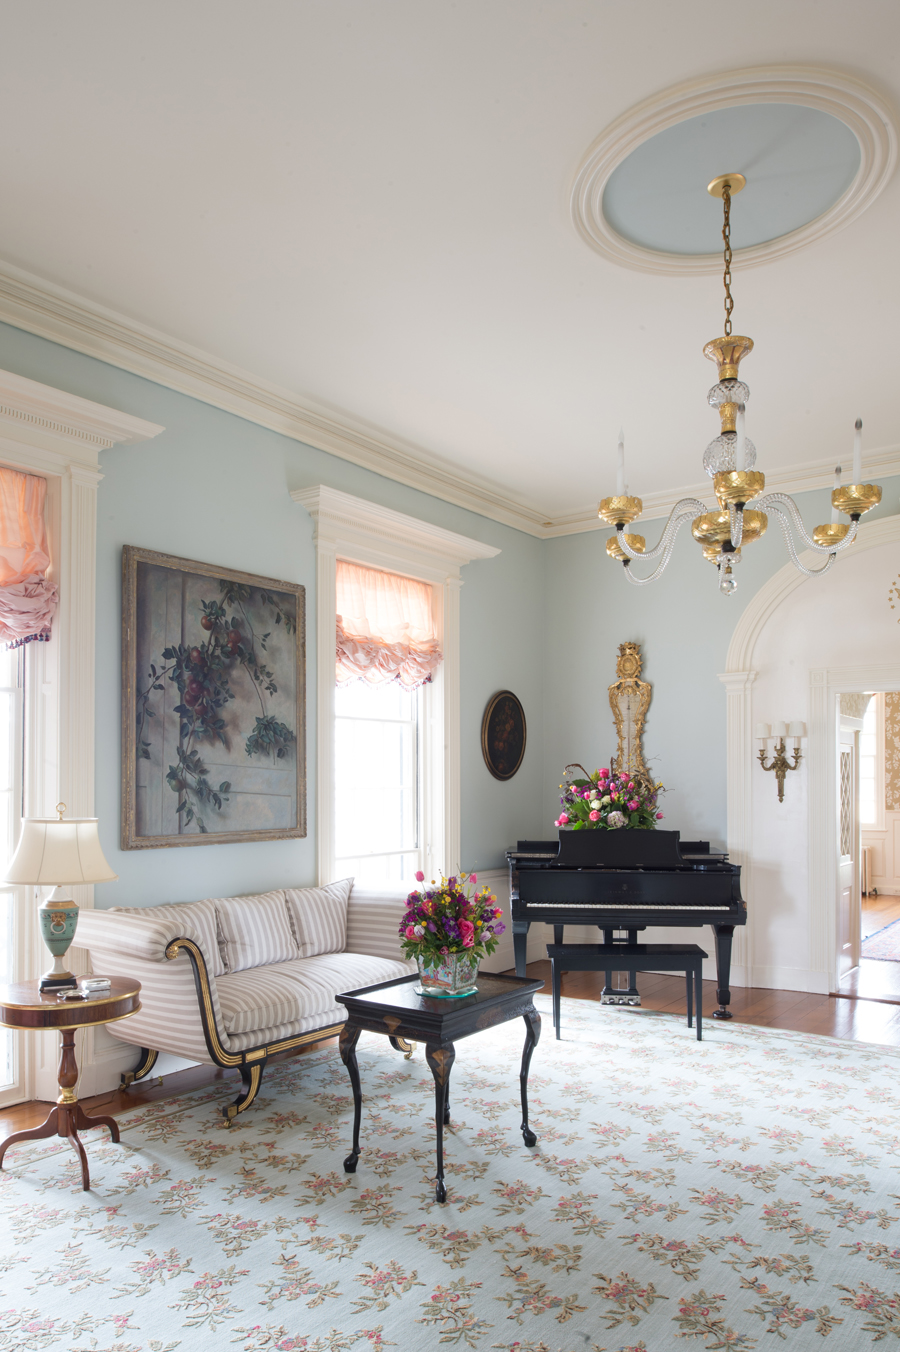 Charlottesville Wine and Country Living Blog » Home Décor